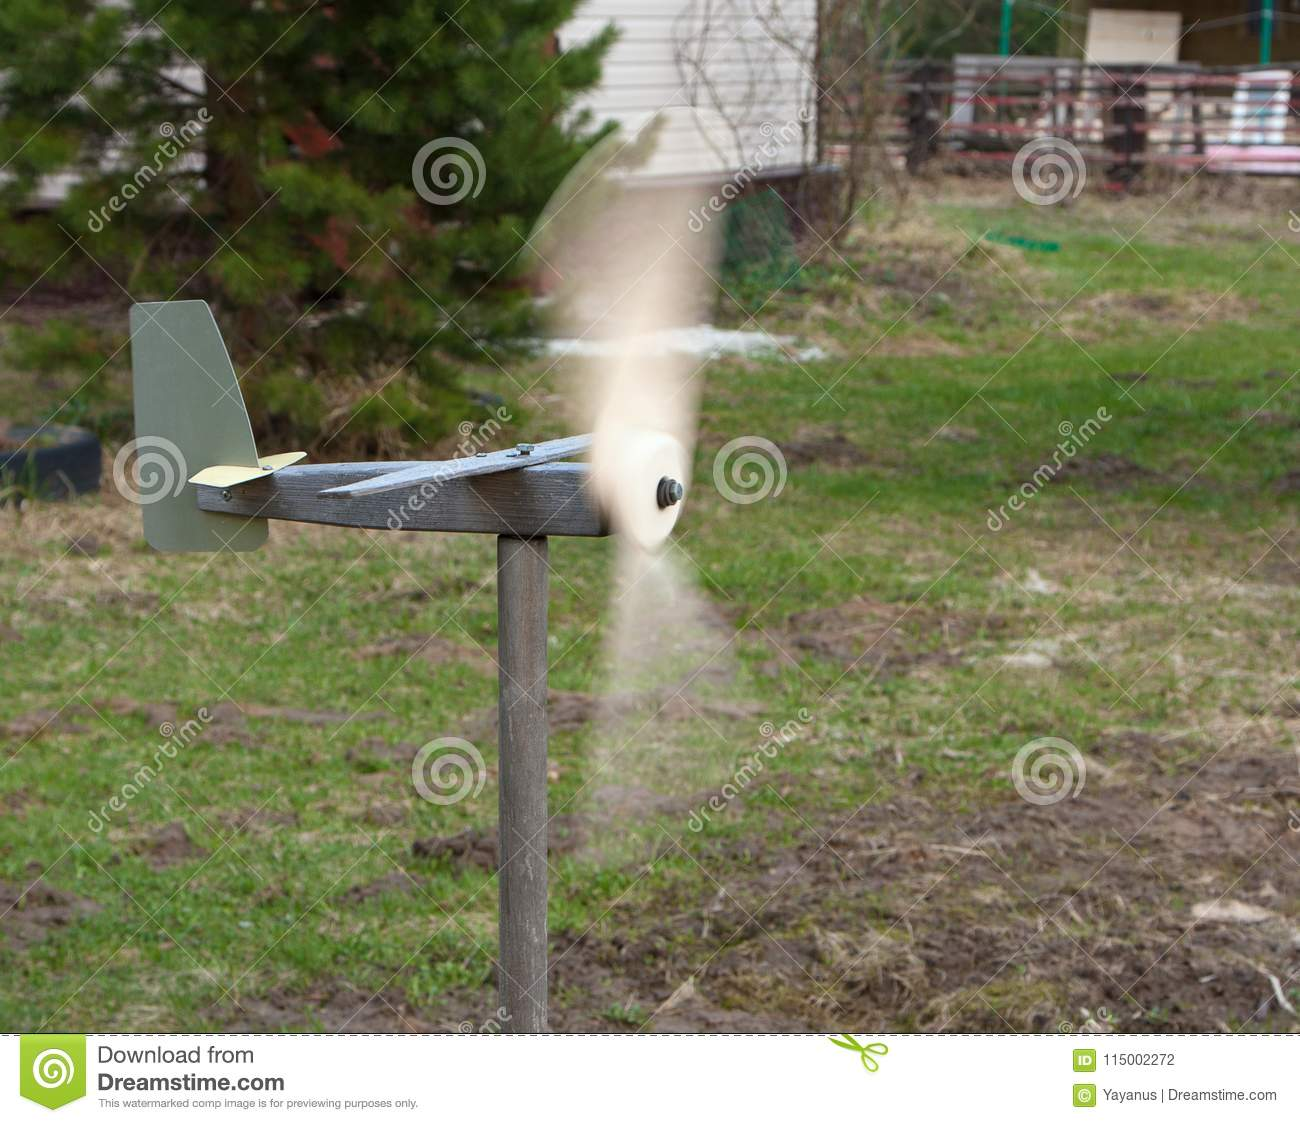 Download Fast Rotating Blades Of Weather Vane In Garden. Stock Photo    Image Of Instrument